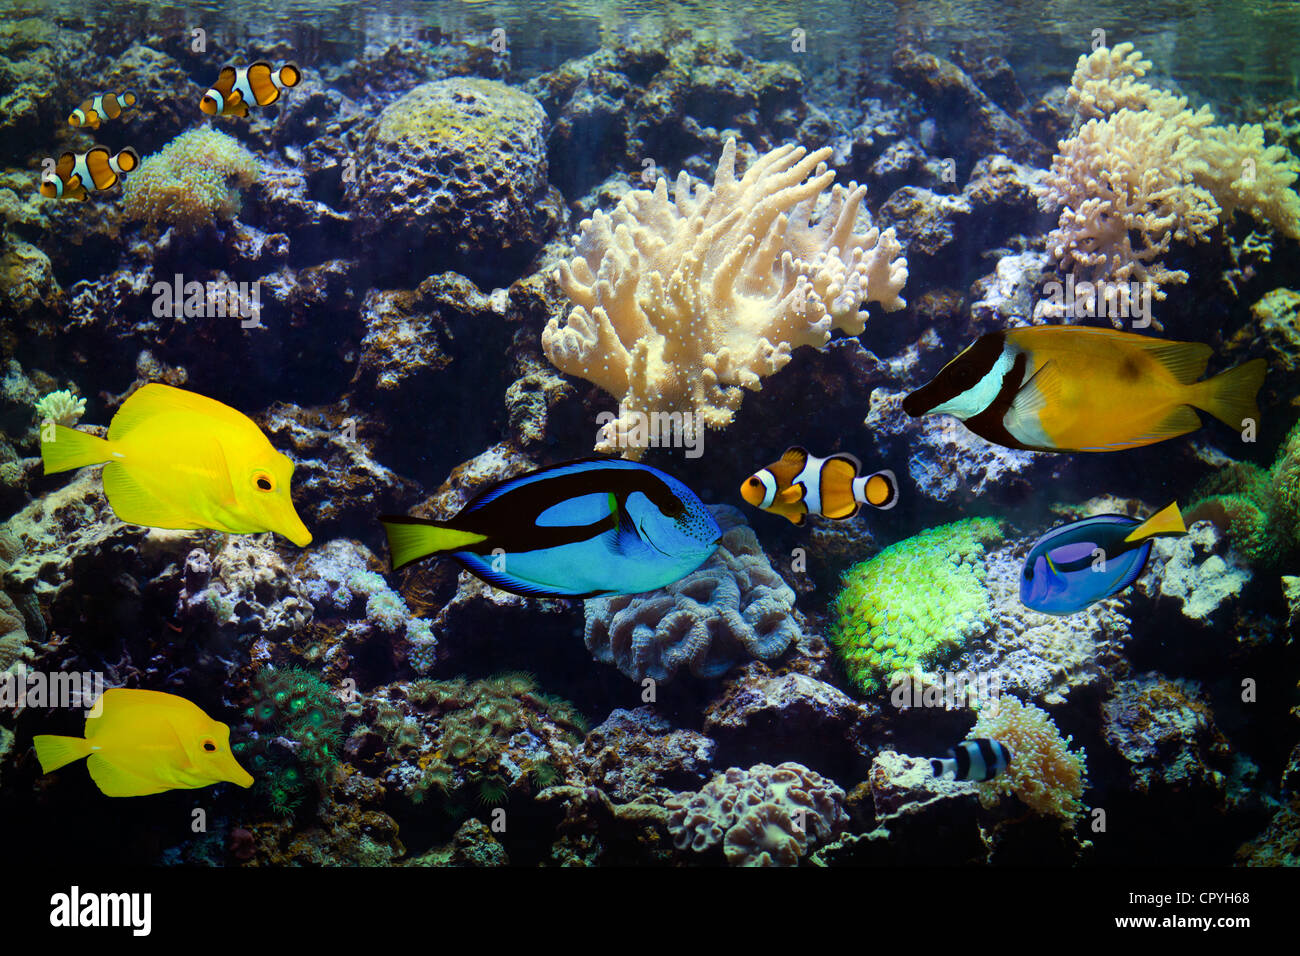 Aquarium Exotic and Tropical coral reef colorful